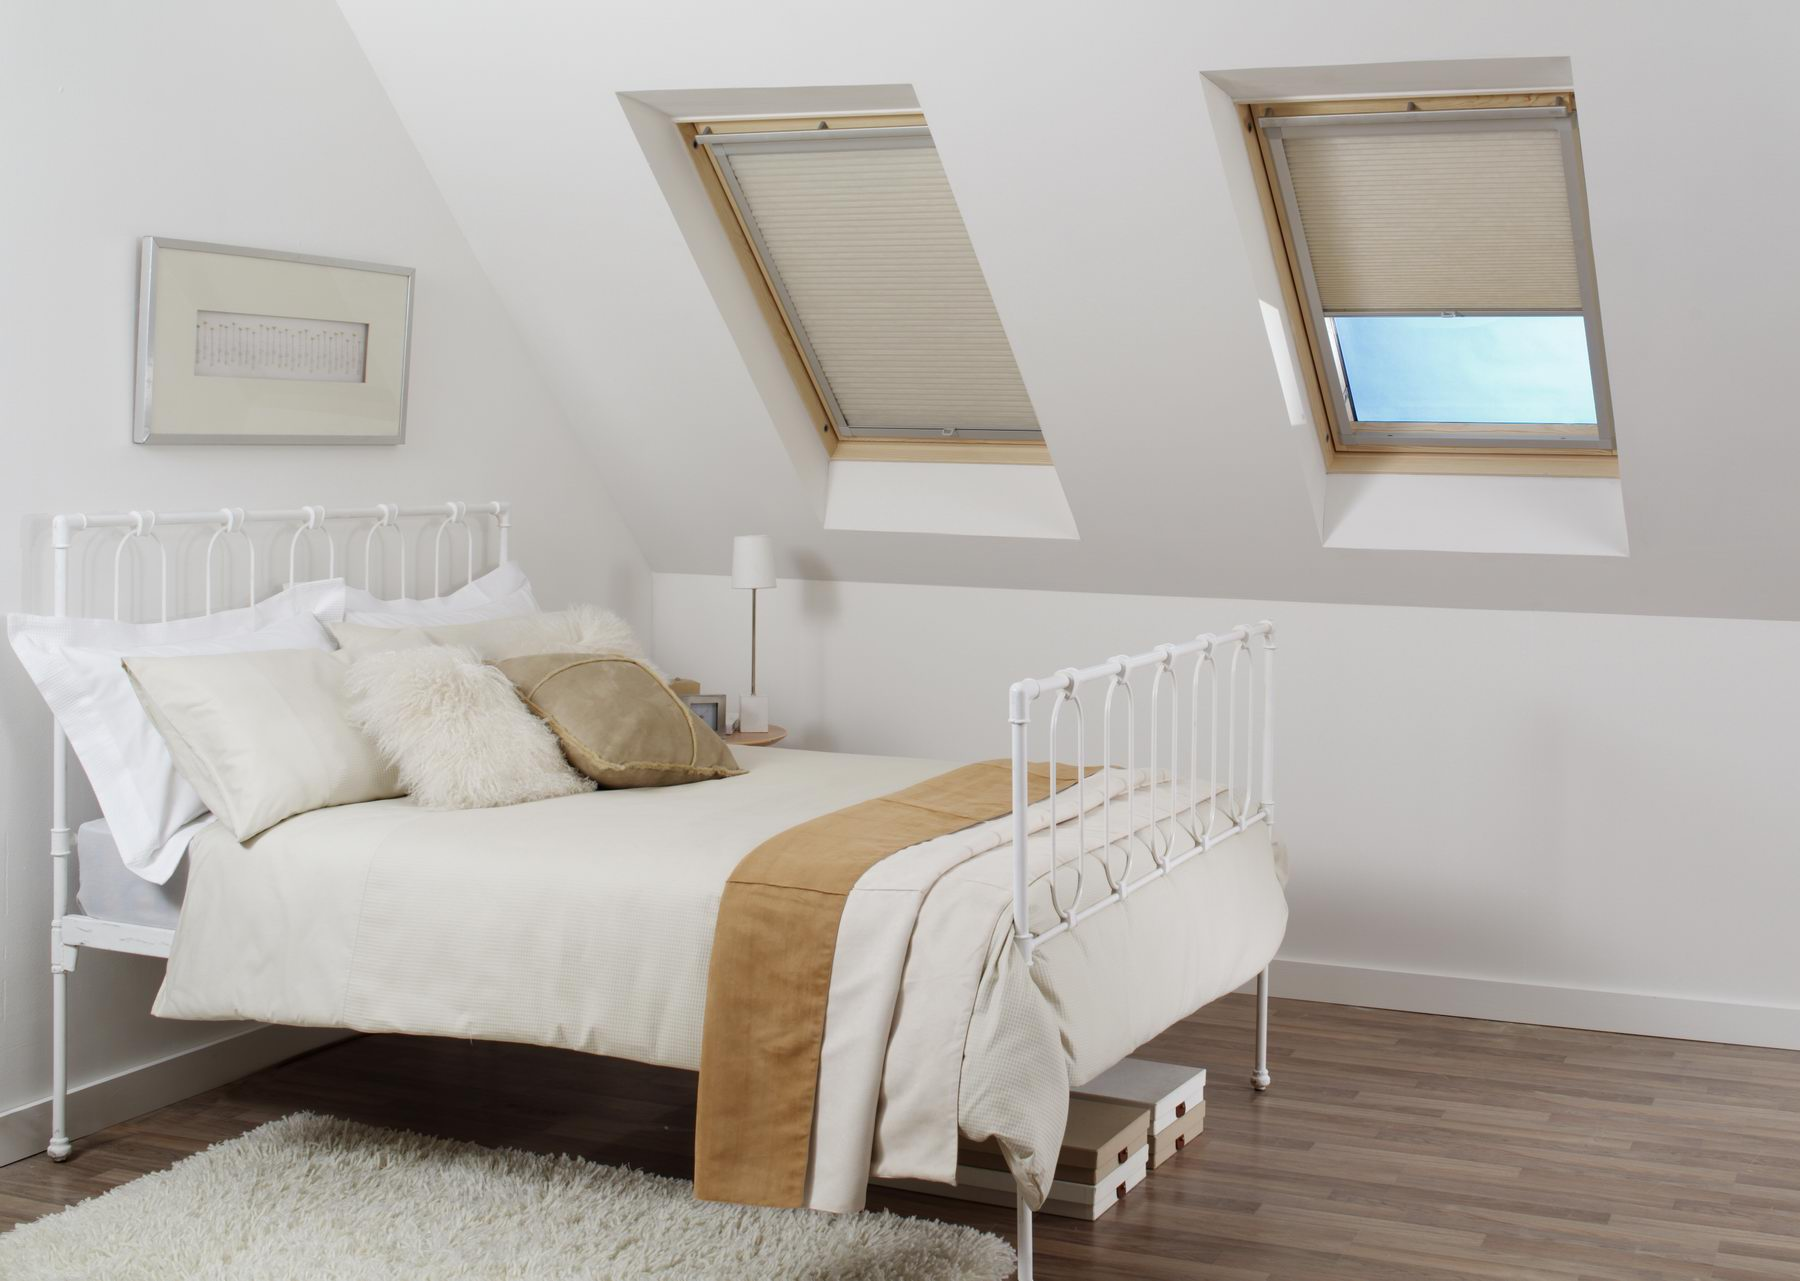 attic bedroom conversion design ideas - Plisy Rolety Rzymskie Ząbki Firany Ząbki